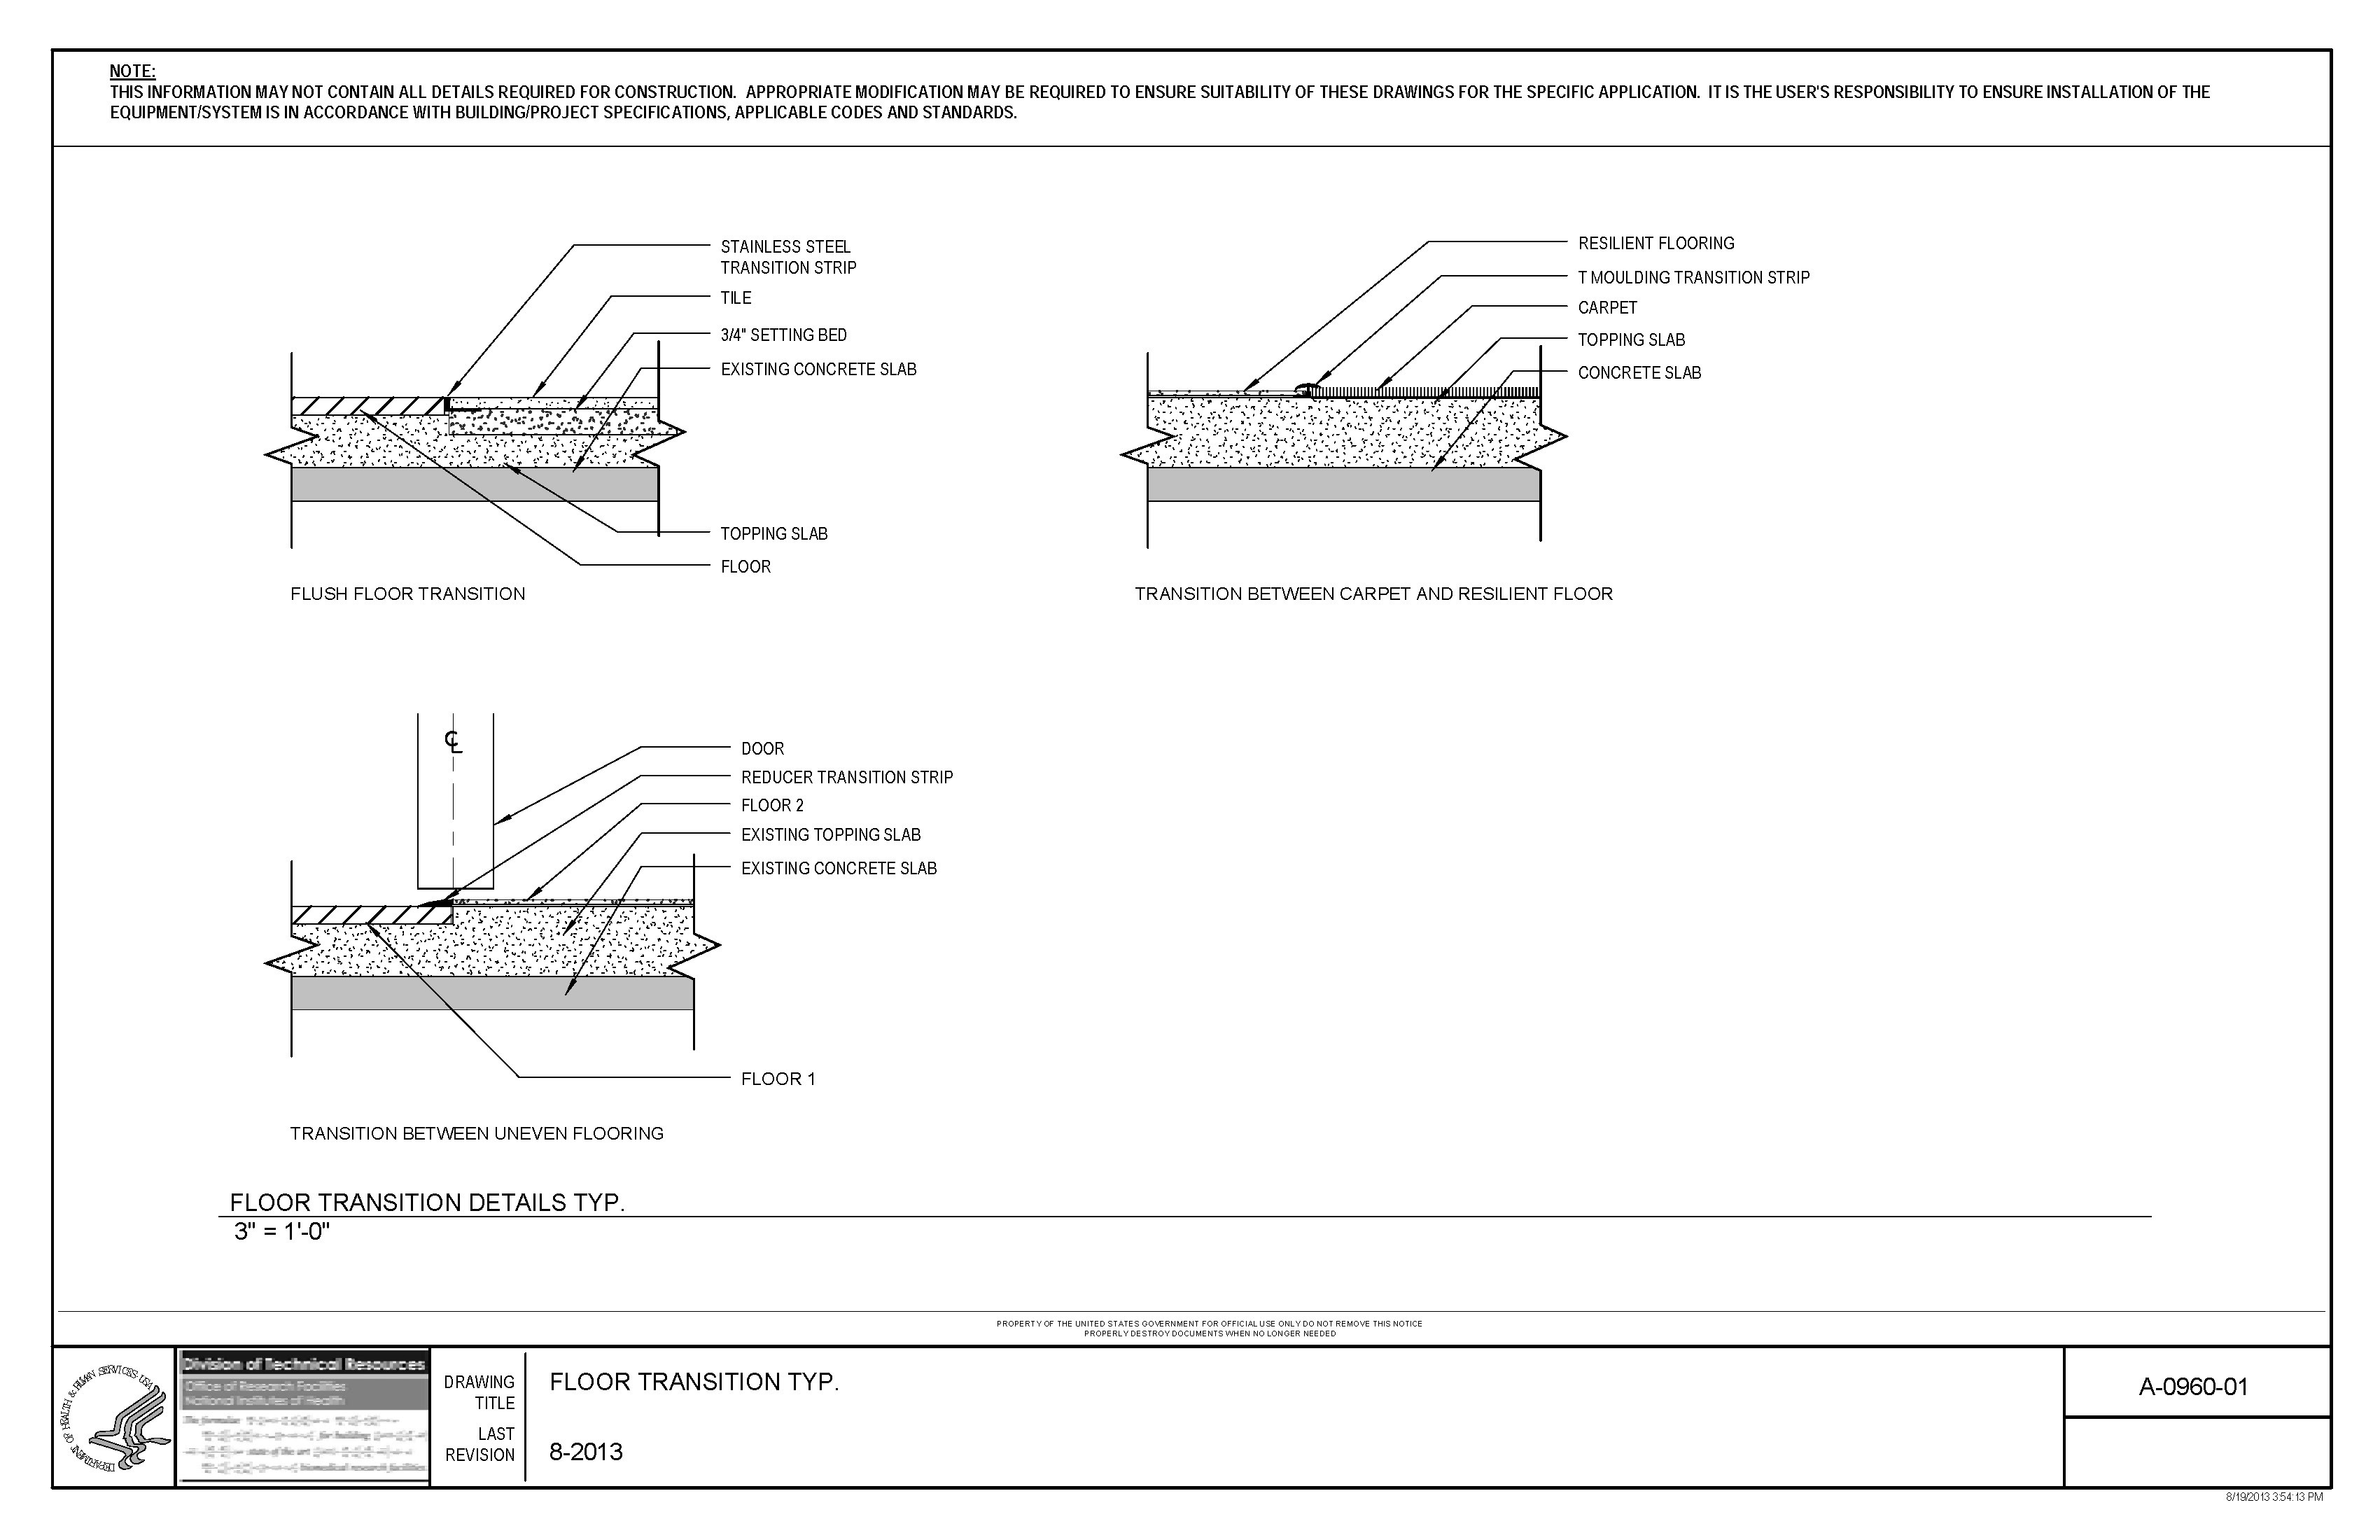 hardwood flooring dimension standards of nih standard cad details within thumbnail of a 0960 01 floor transition detail typ